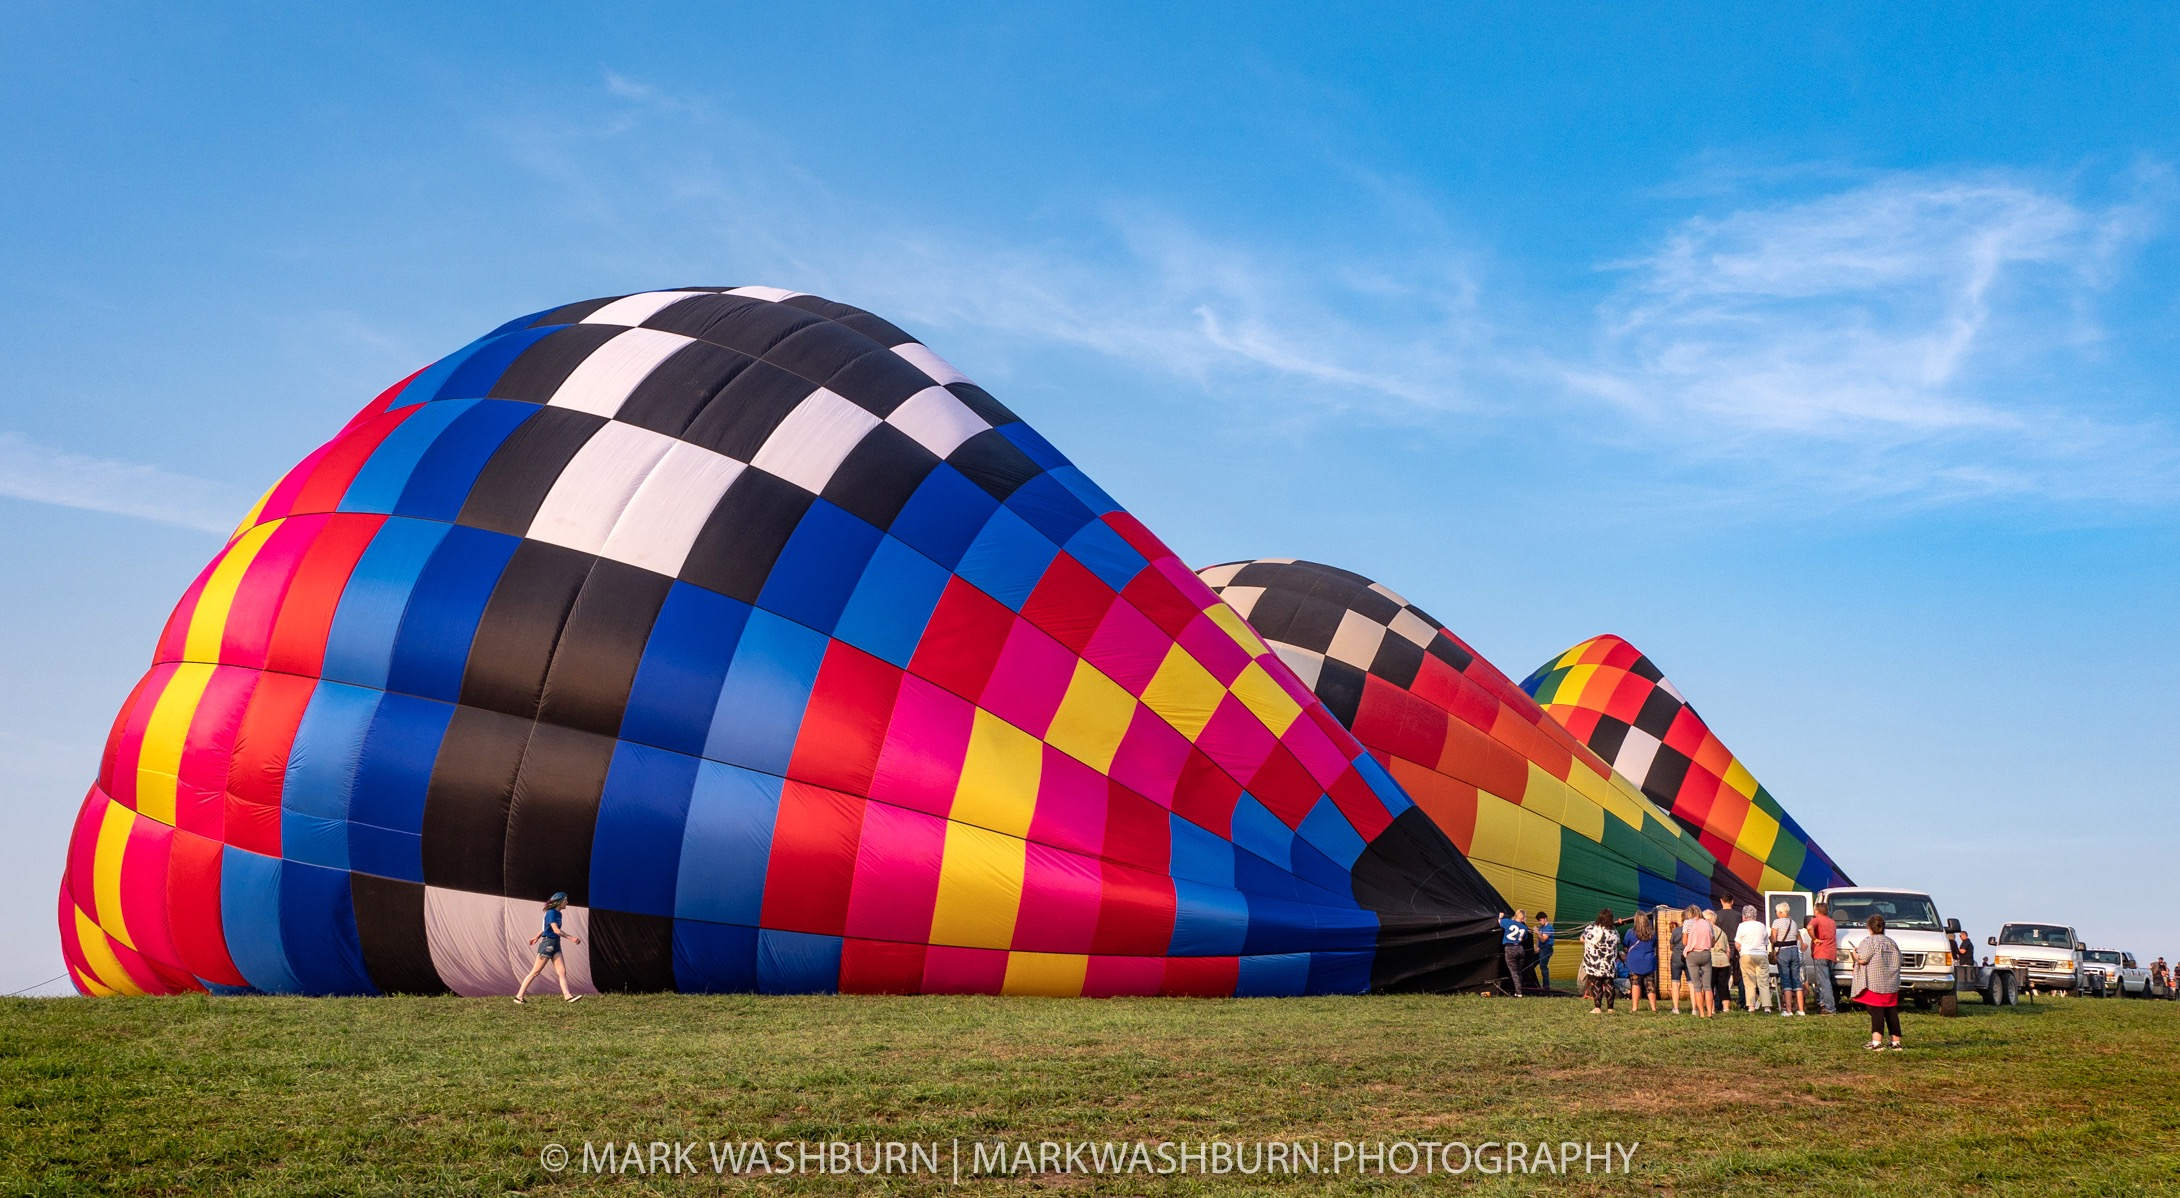 Balloon inflatables